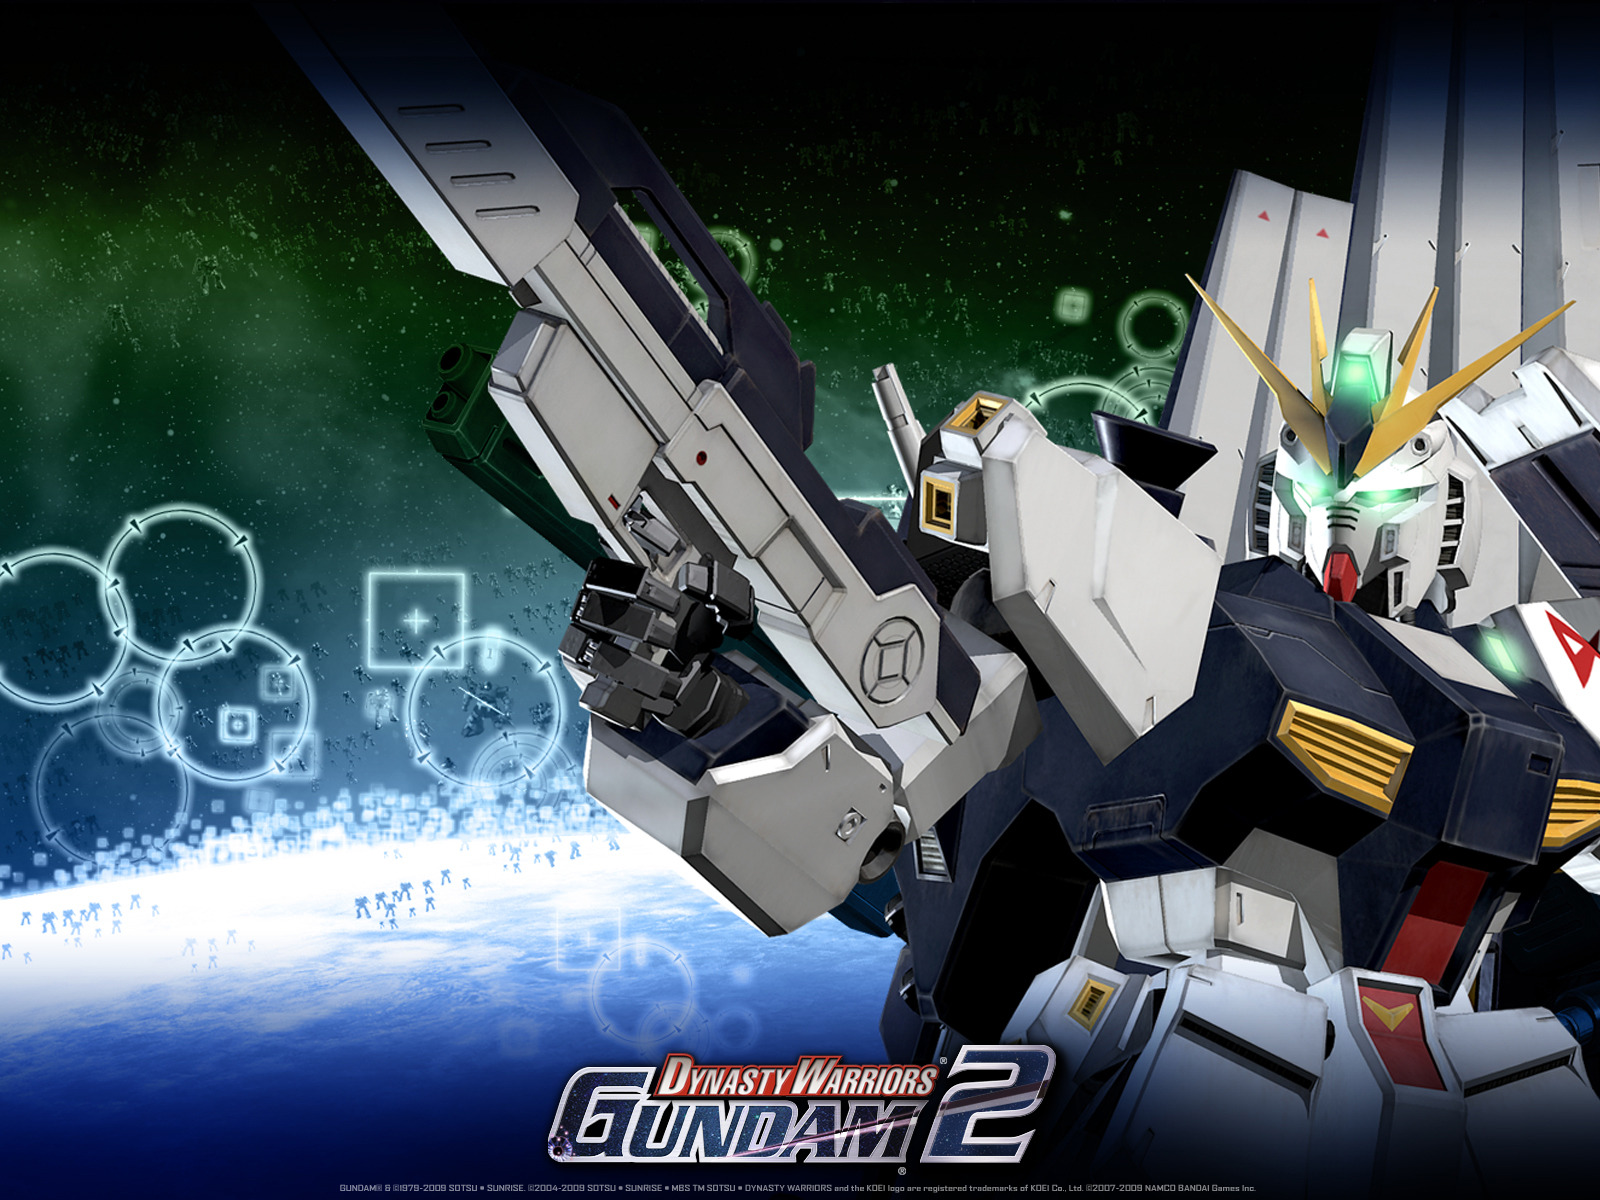 Nu Gundam  Dynasty Warriors Gundam 2 Wallpaper Gallery   Best 1600x1200